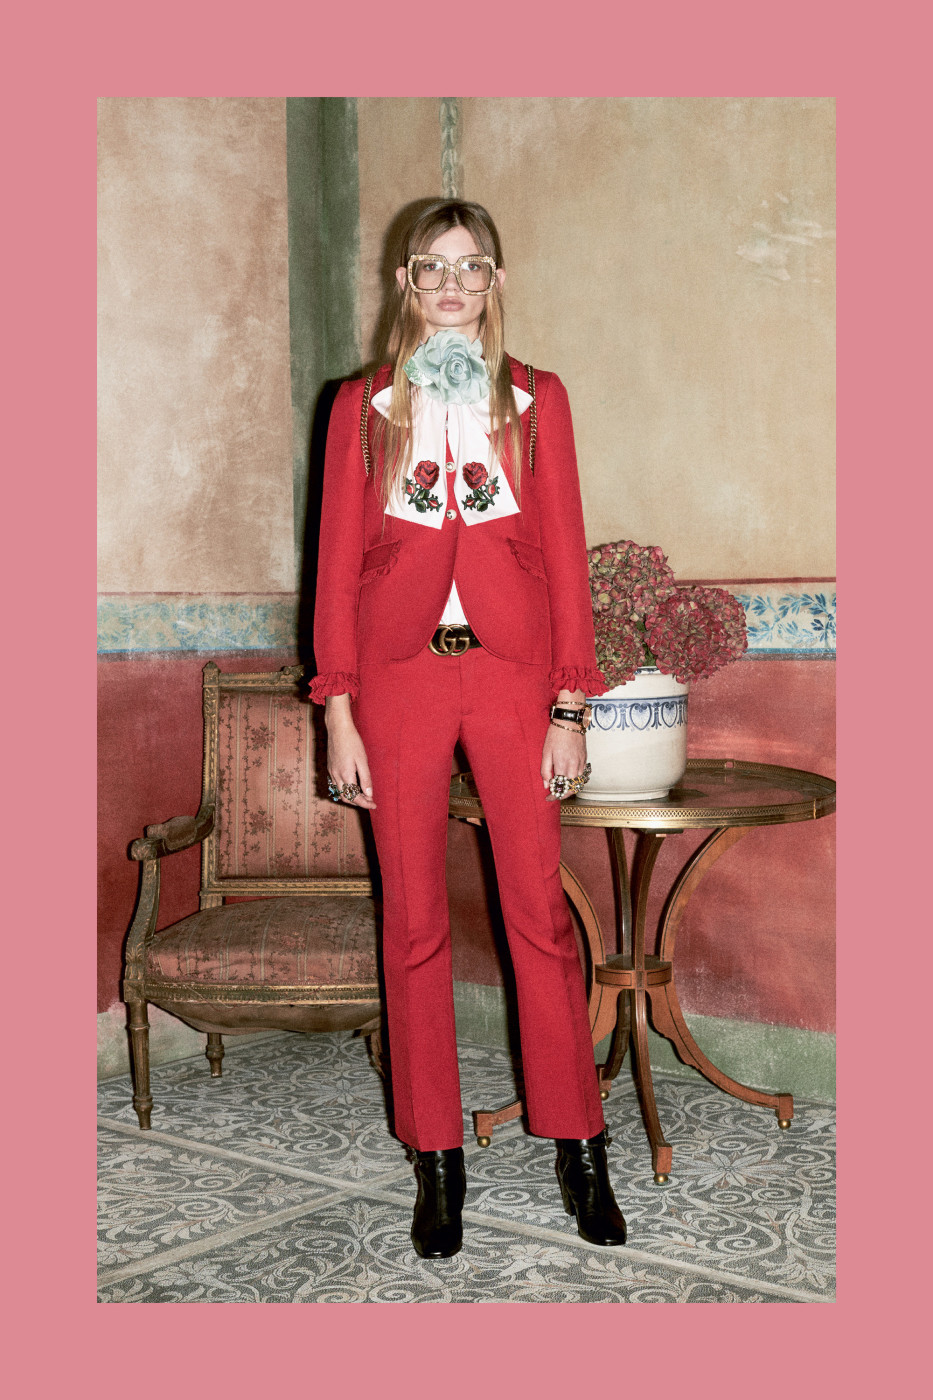 paula-schinschel-gucci-pre-fall-2016-lookbook-69